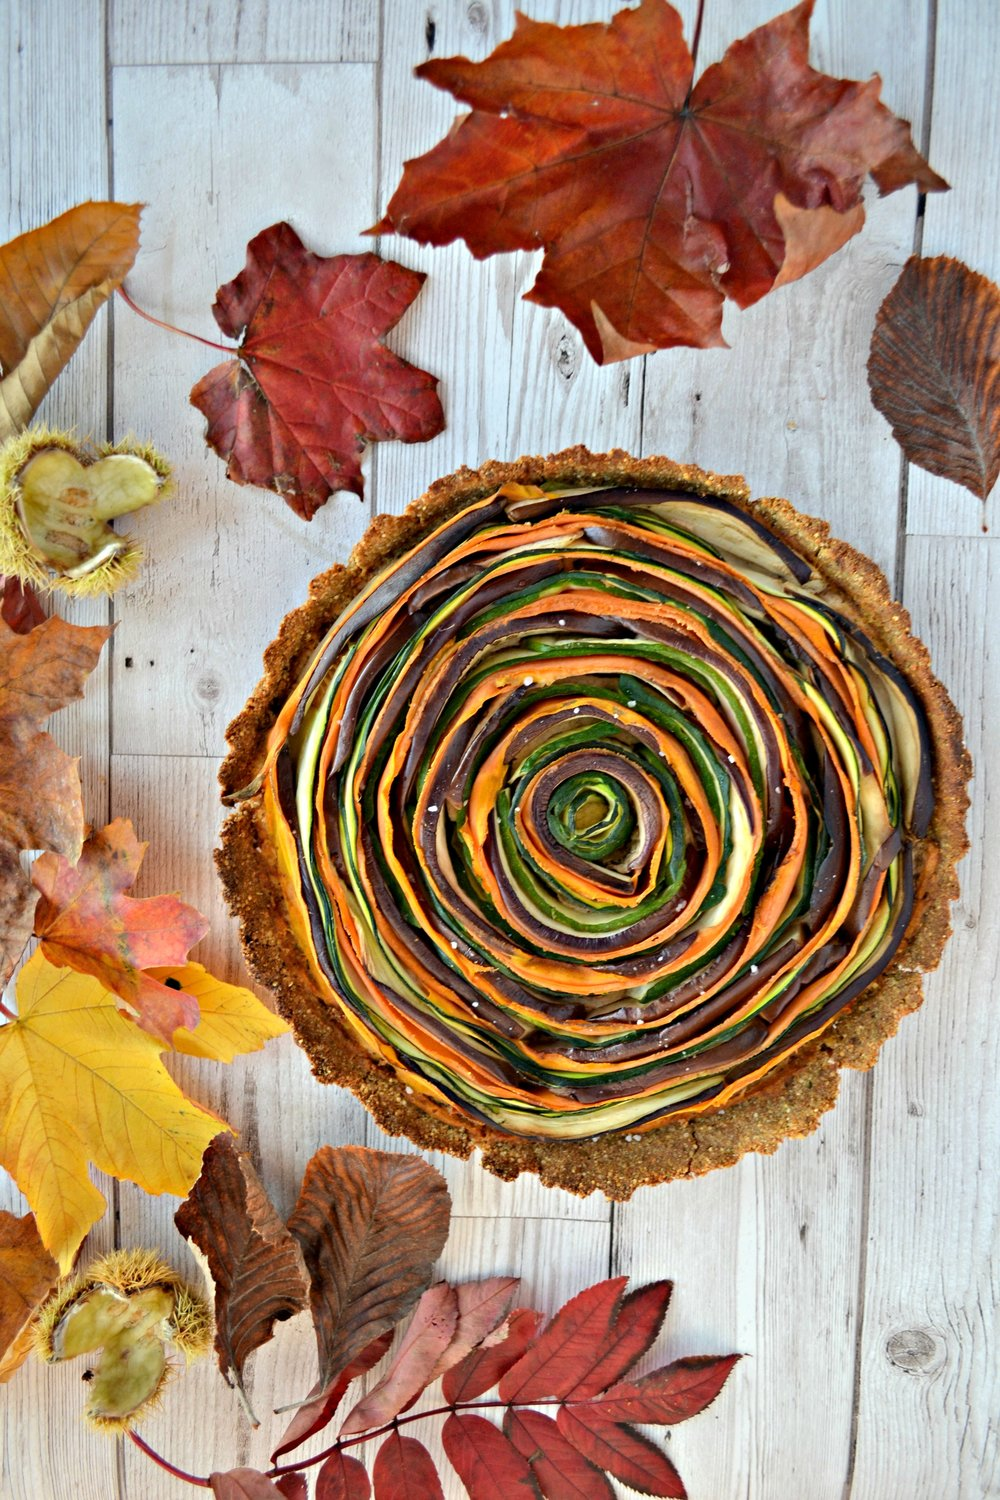 Spiral vegetable vegan tart